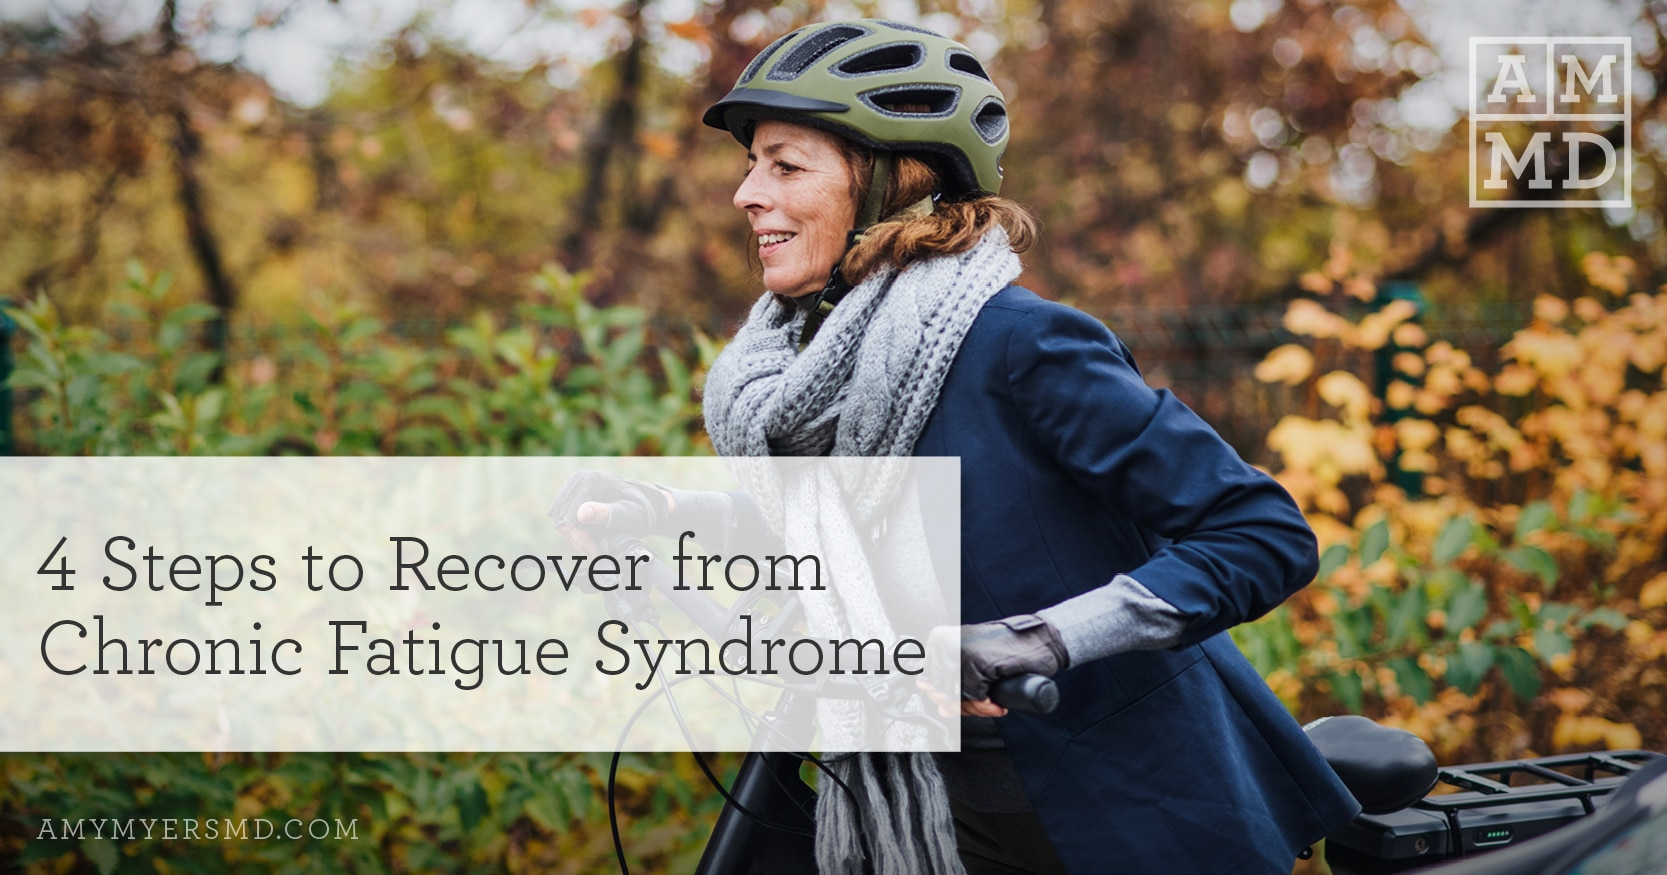 4 Steps to Recover from Chronic Fatigue Syndrome - Woman with a Bicycle - Featured Image - Amy Myers MD